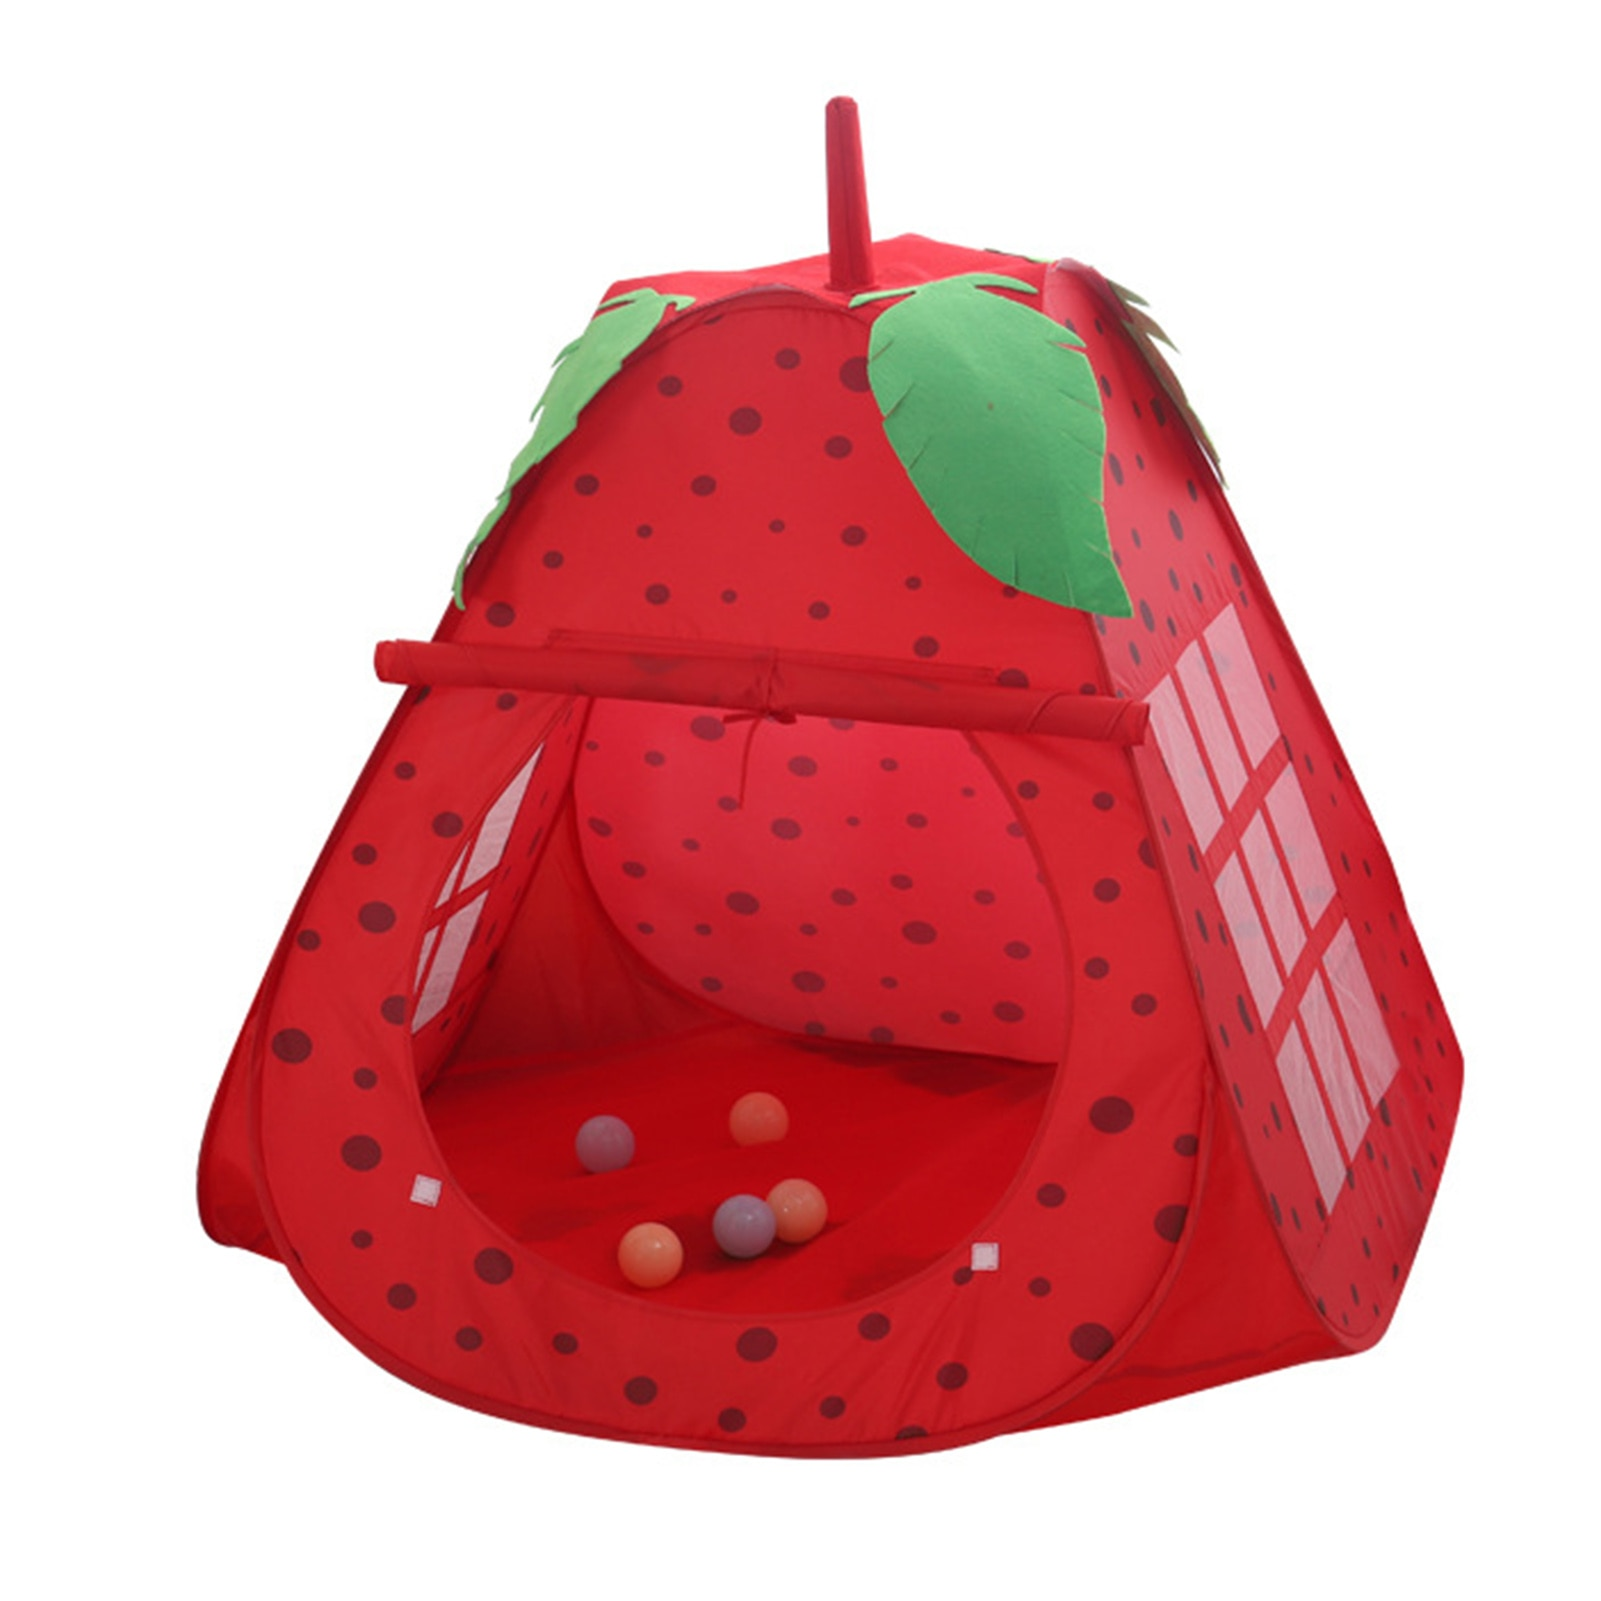 New Children Indoor Outdoor Ocean Balls Pool Play Tent Baby Toys Ball Pool Foldable Pretend Play House for Kids Christmas Gift toys tent for kids tunnel ball pool pits ocean series cartoon game portable foldable outdoor sports toys with basket children